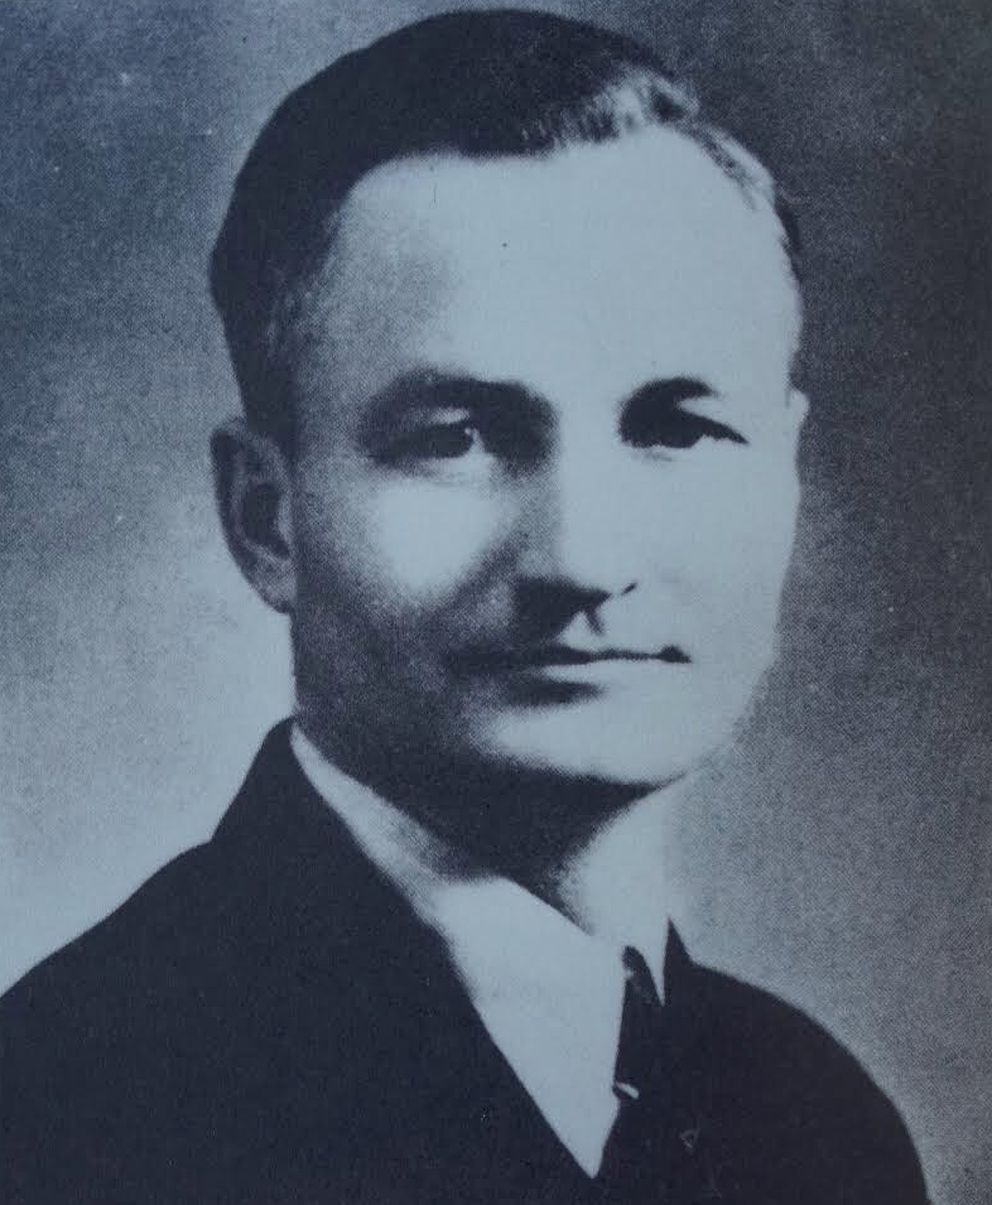 Veryl Fuller, the University of Alaska's first scientist to study the aurora, in a portrait from the 1936 university yearbook. (Courtesy Ned Rozell)